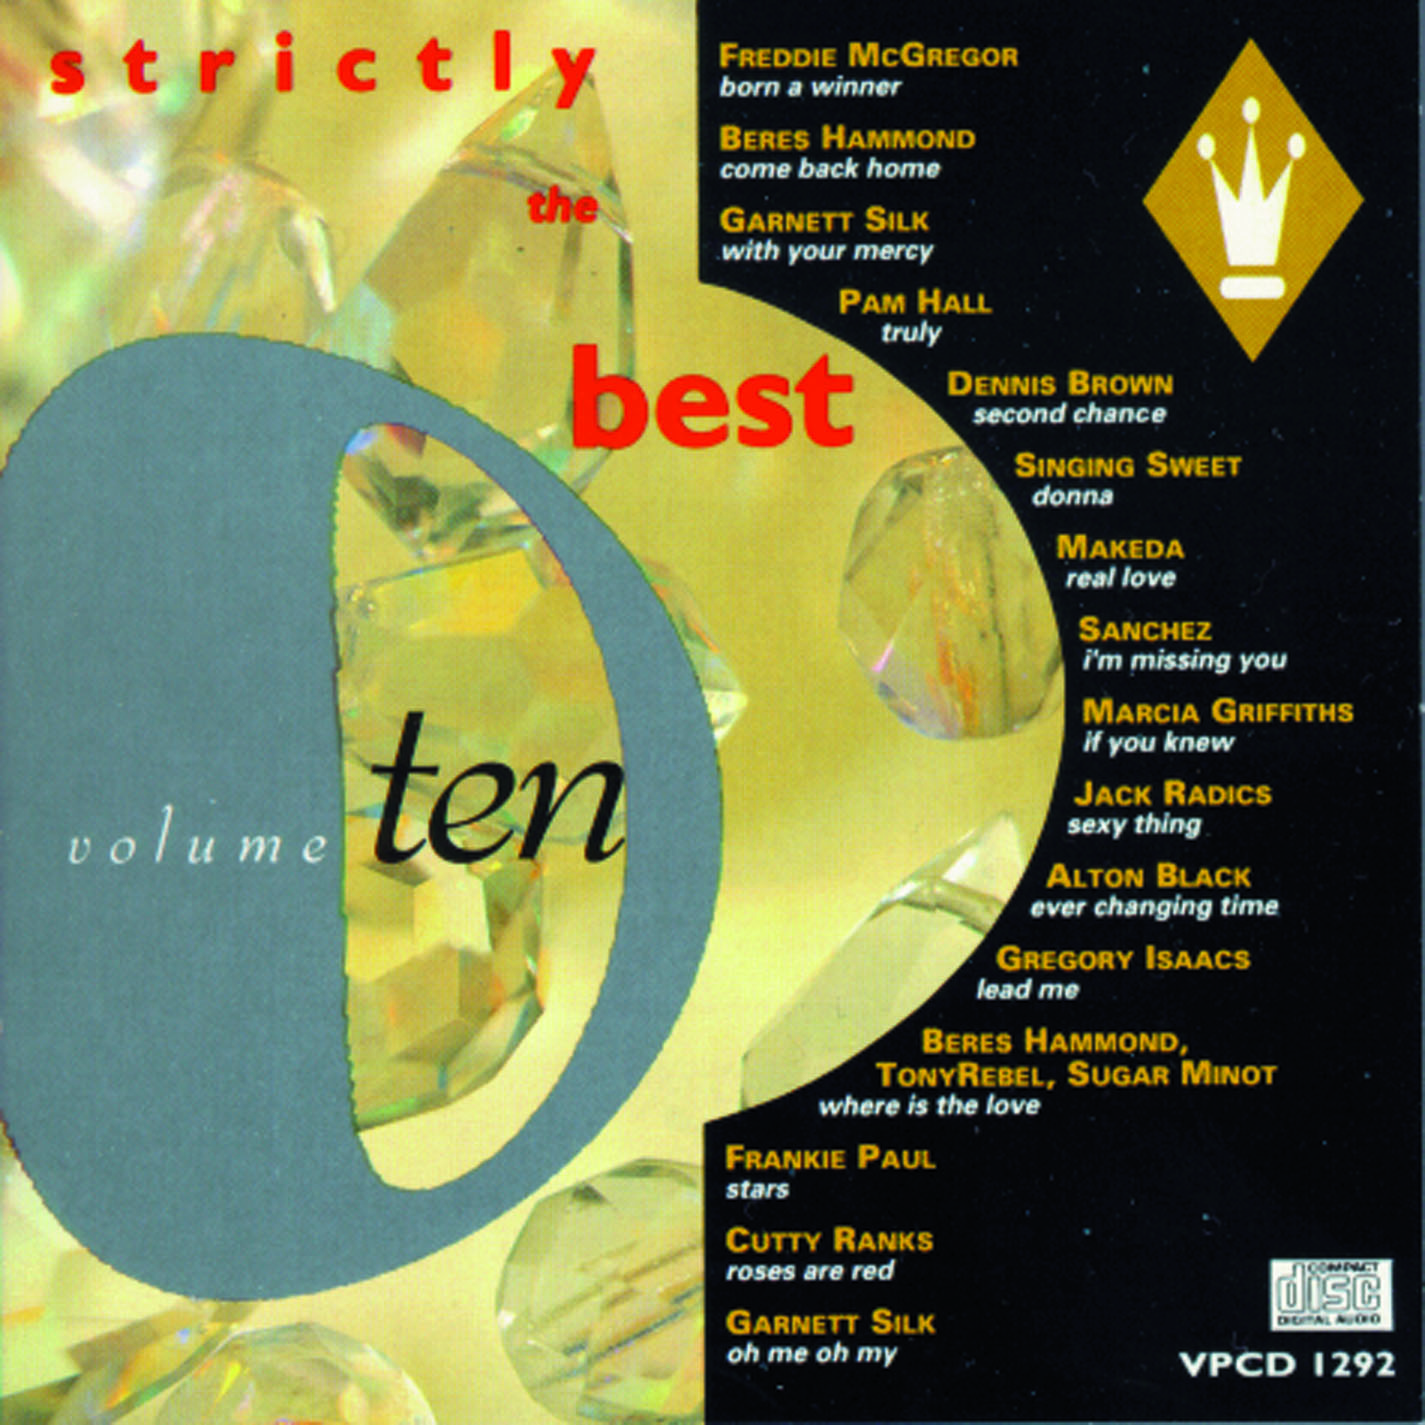 Strictly The Best Vol. 10